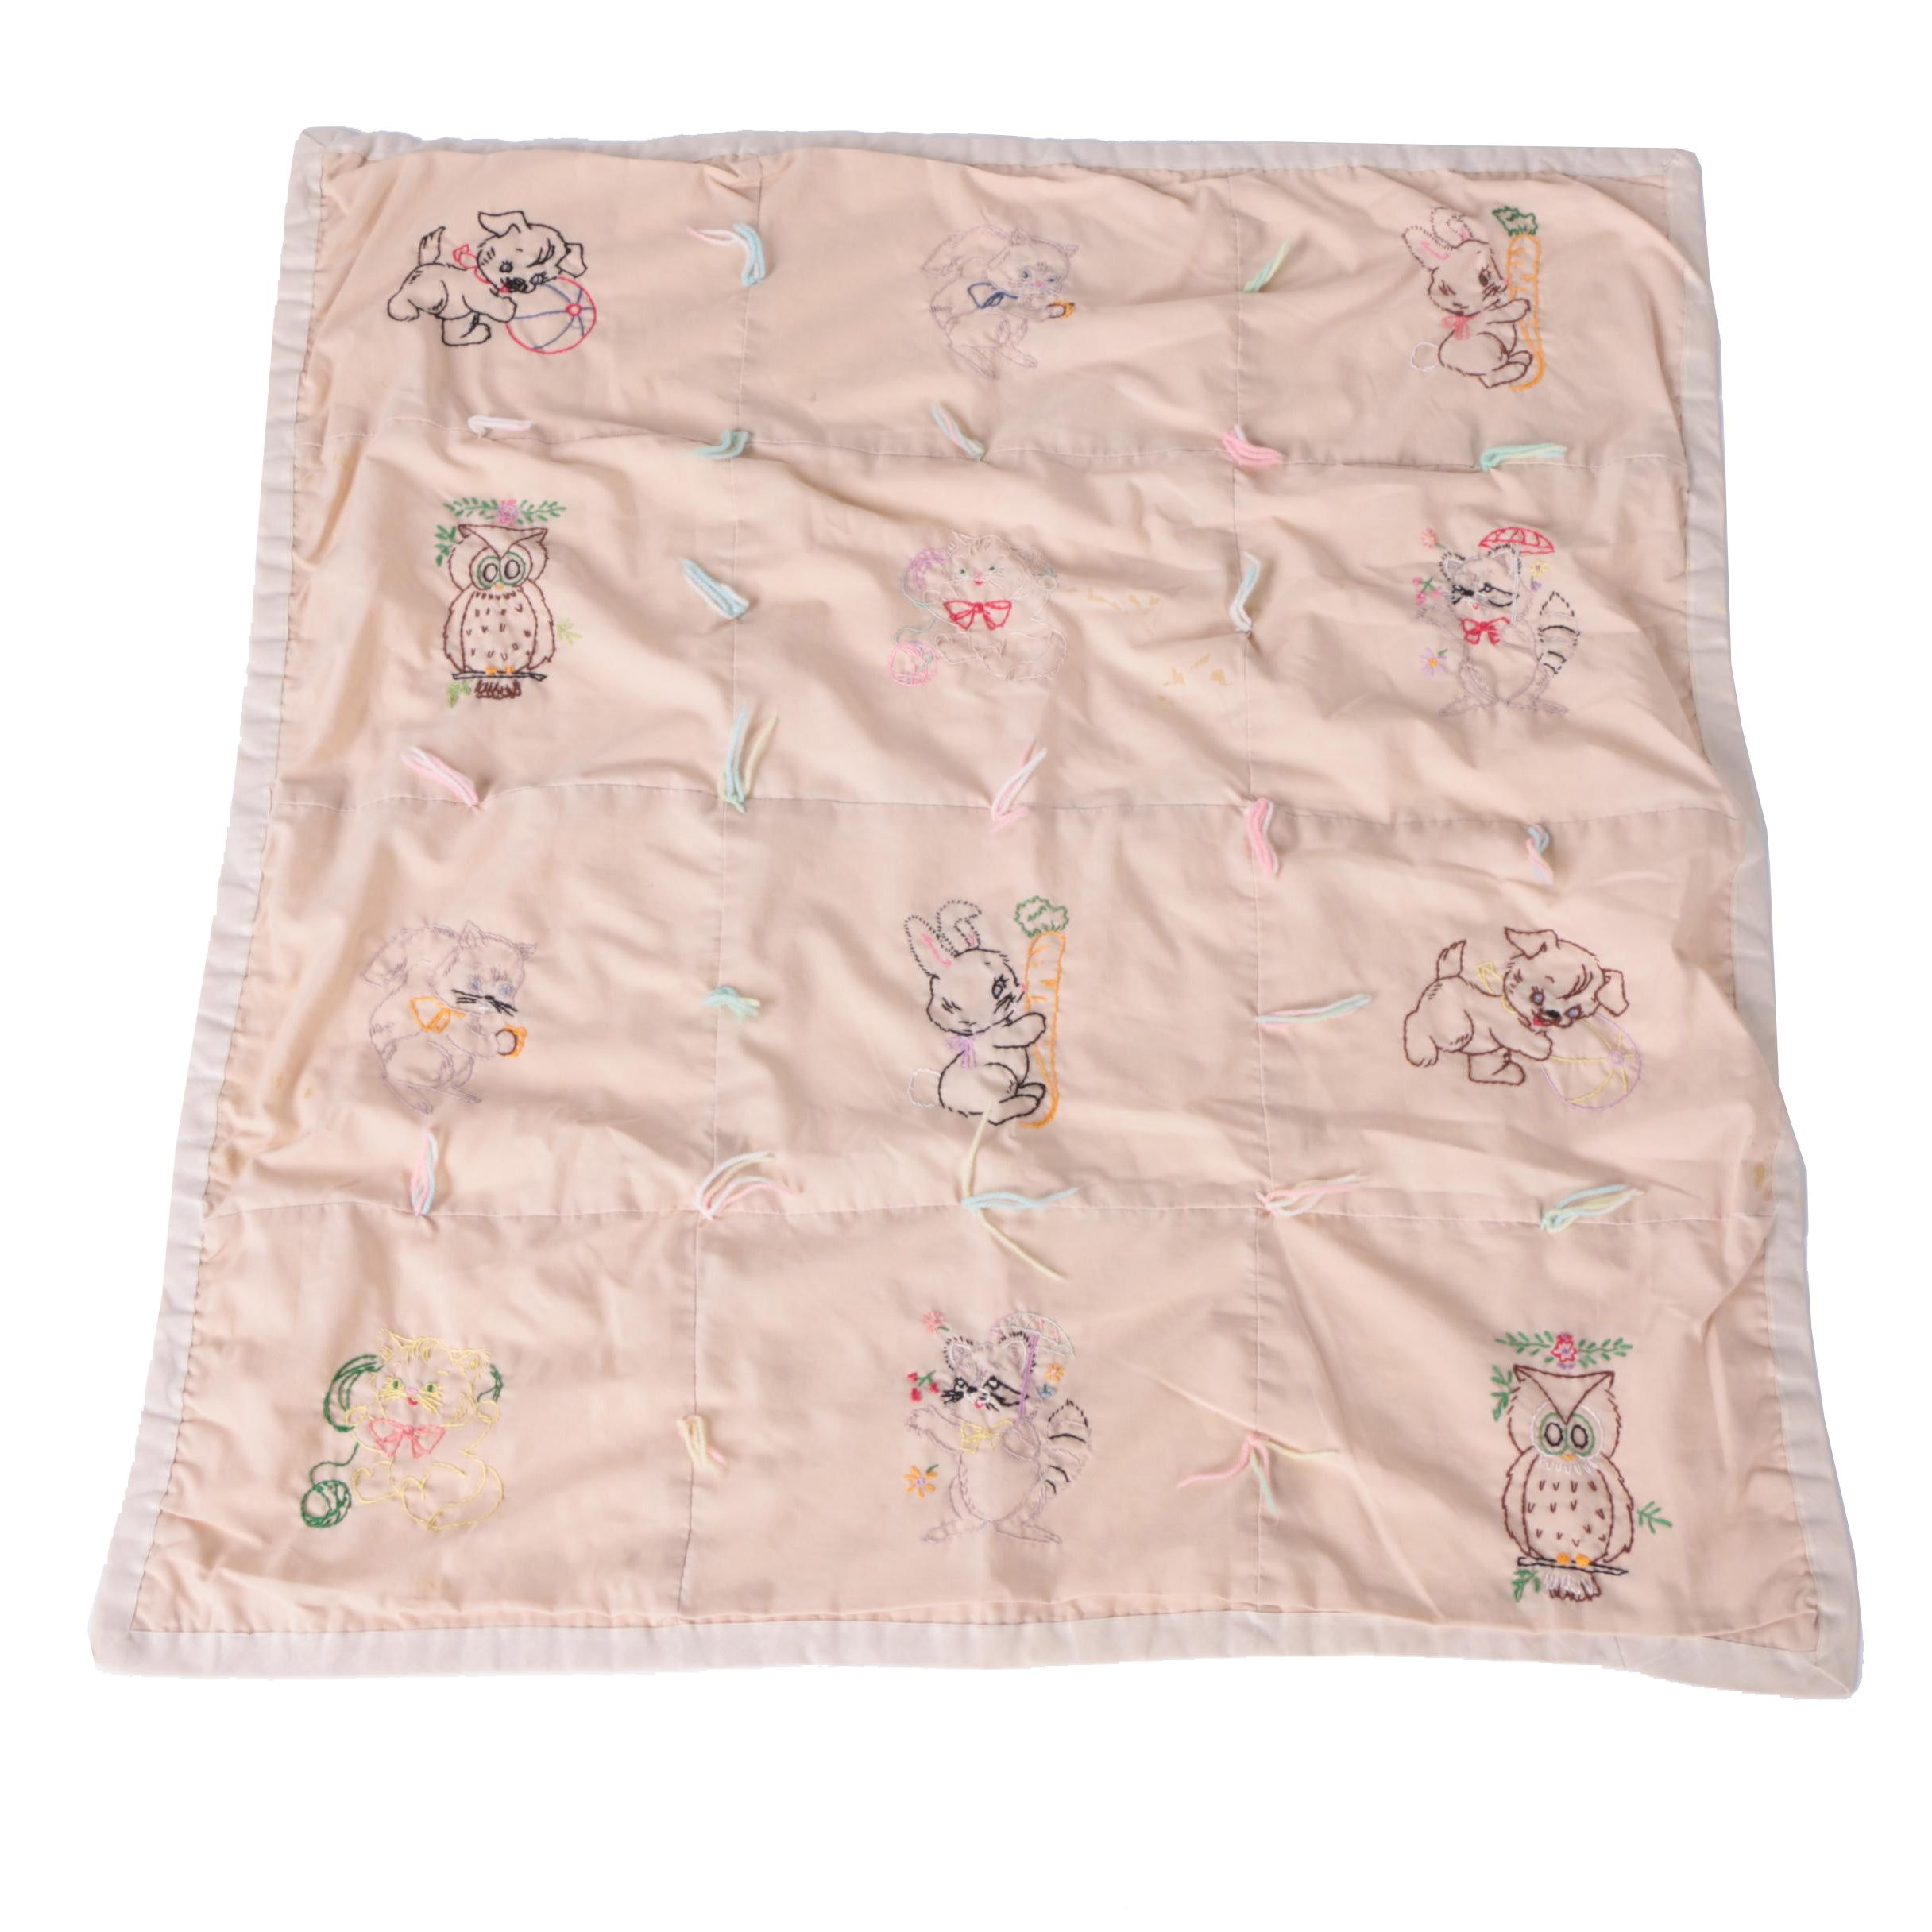 Children's Blanket with Embroidered Animals